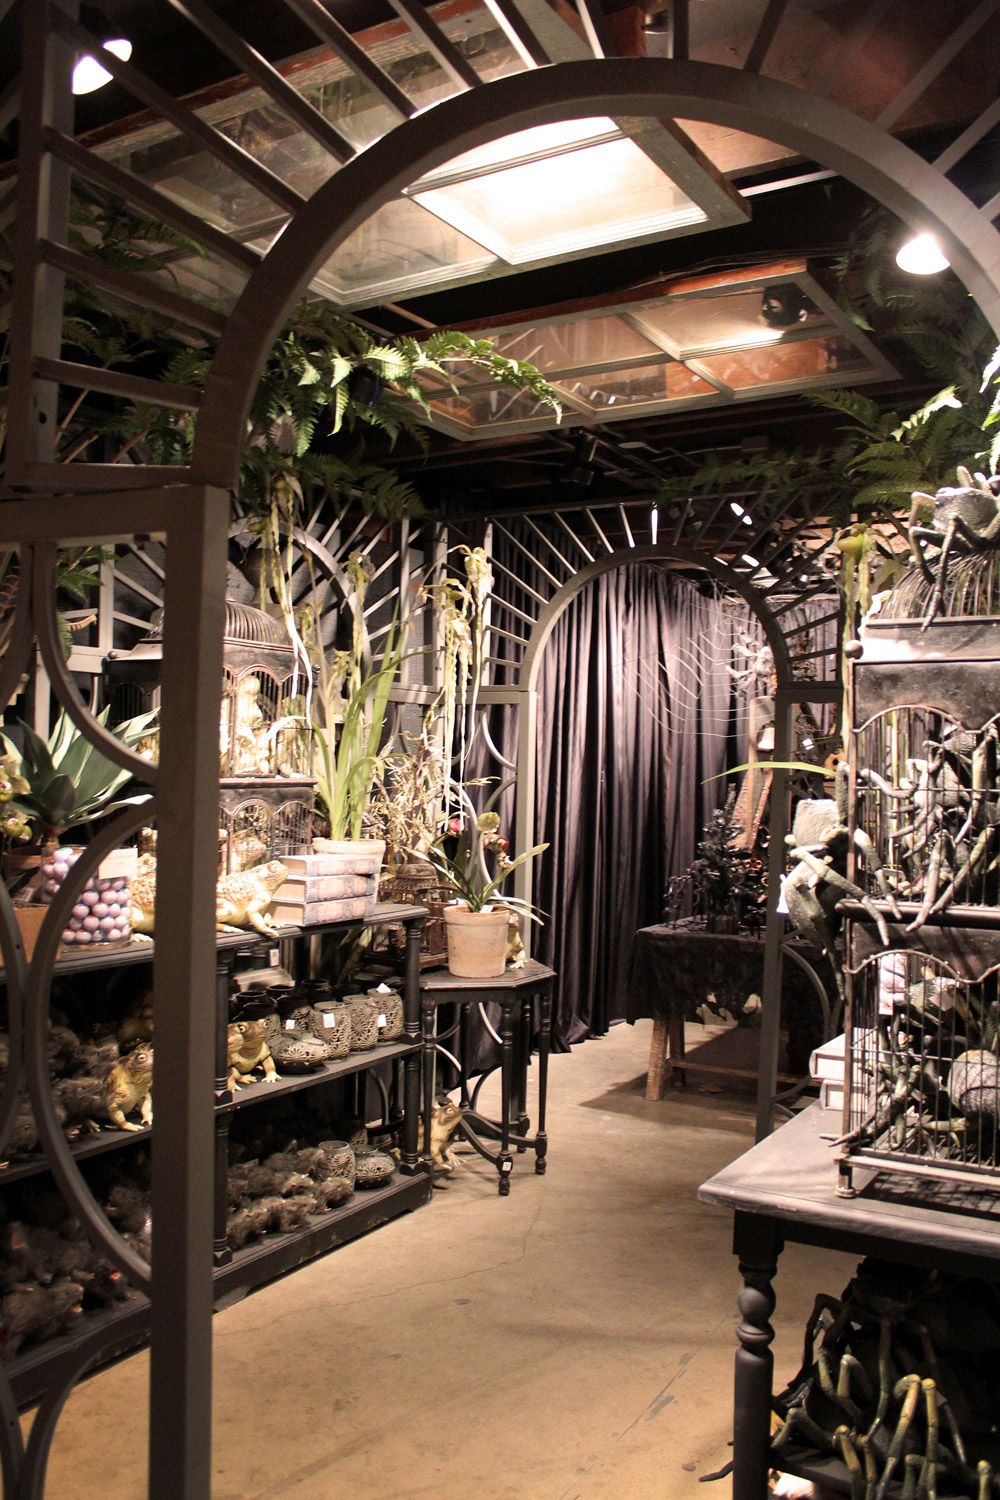 roger s gardens halloween display goth up your greenhouse on classy backyard design ideas may be you never think id=56028